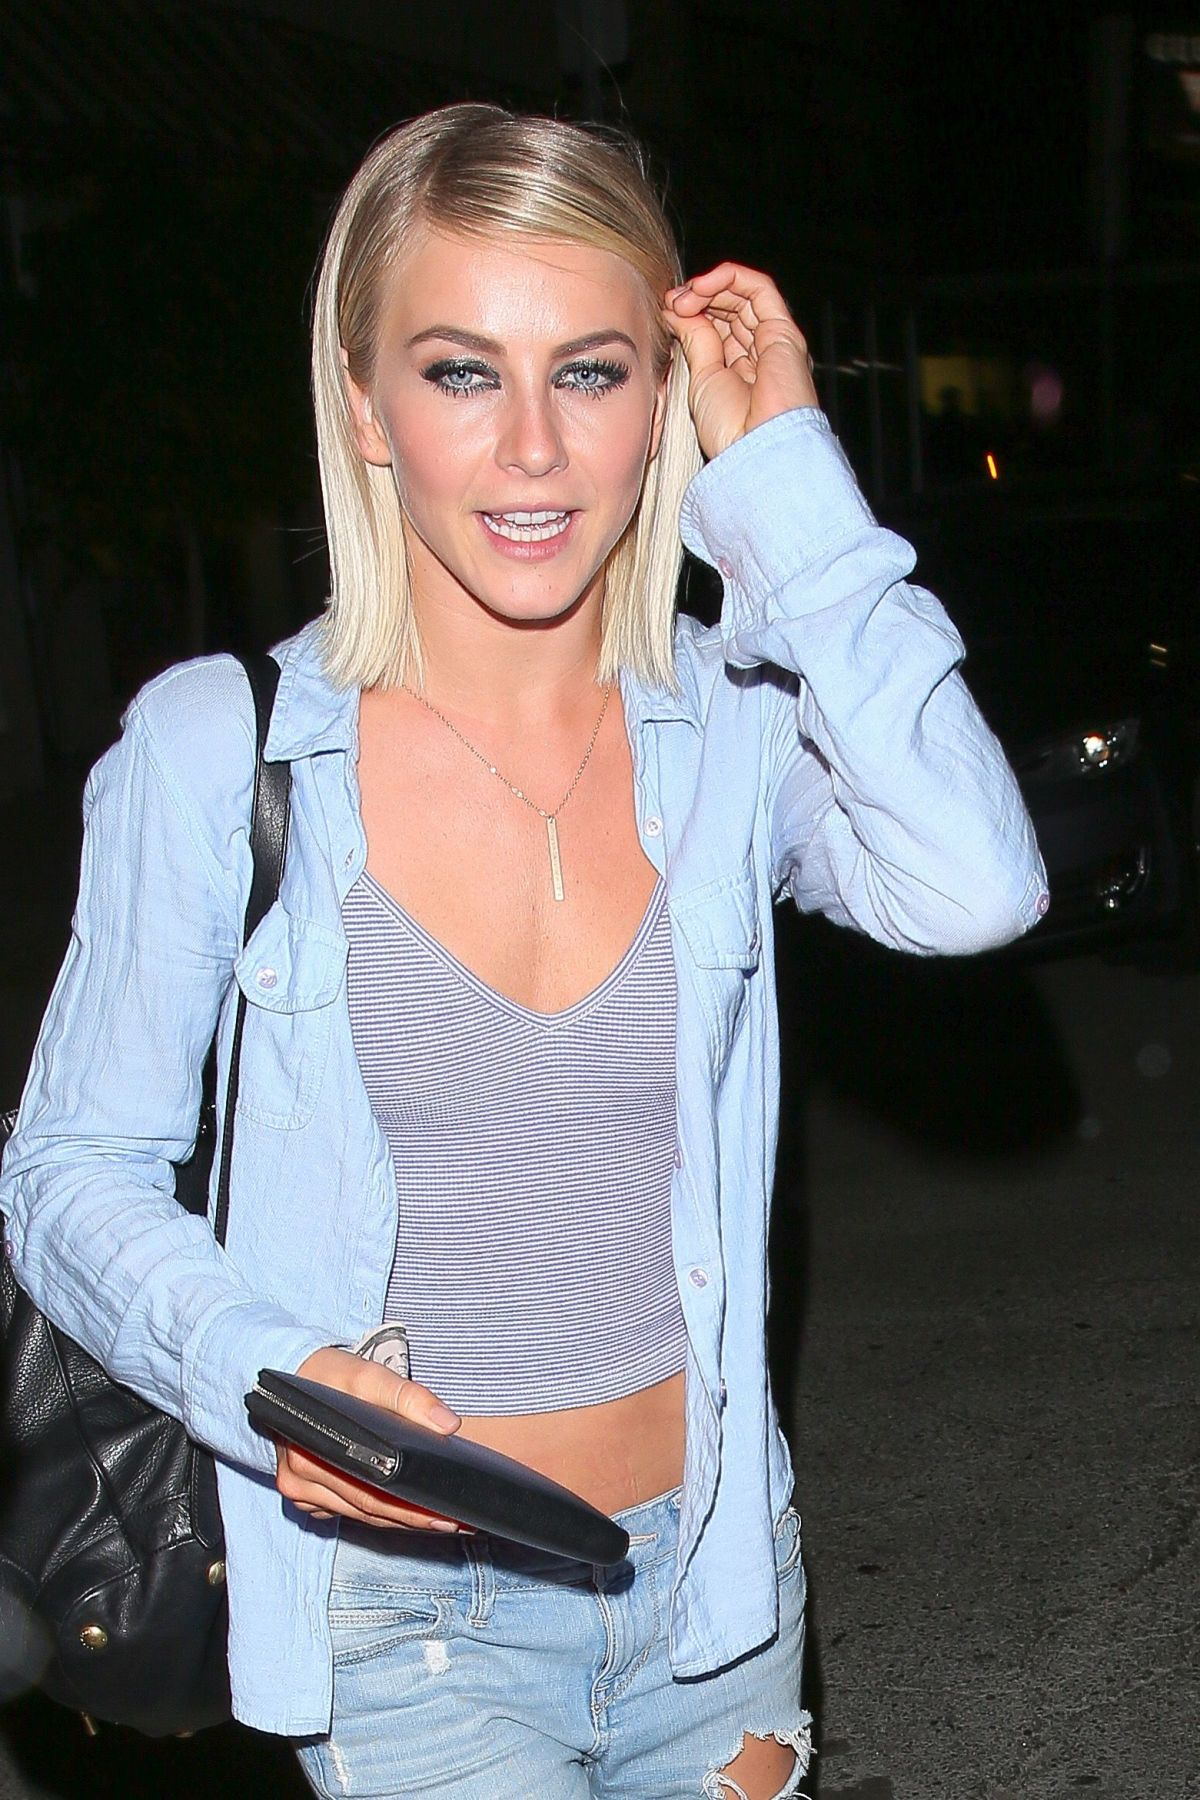 cce487d8b3c JULIANNE HOUGH in Ripped Jeans Leaves The Nice Guy in West Hollywood 09/22/